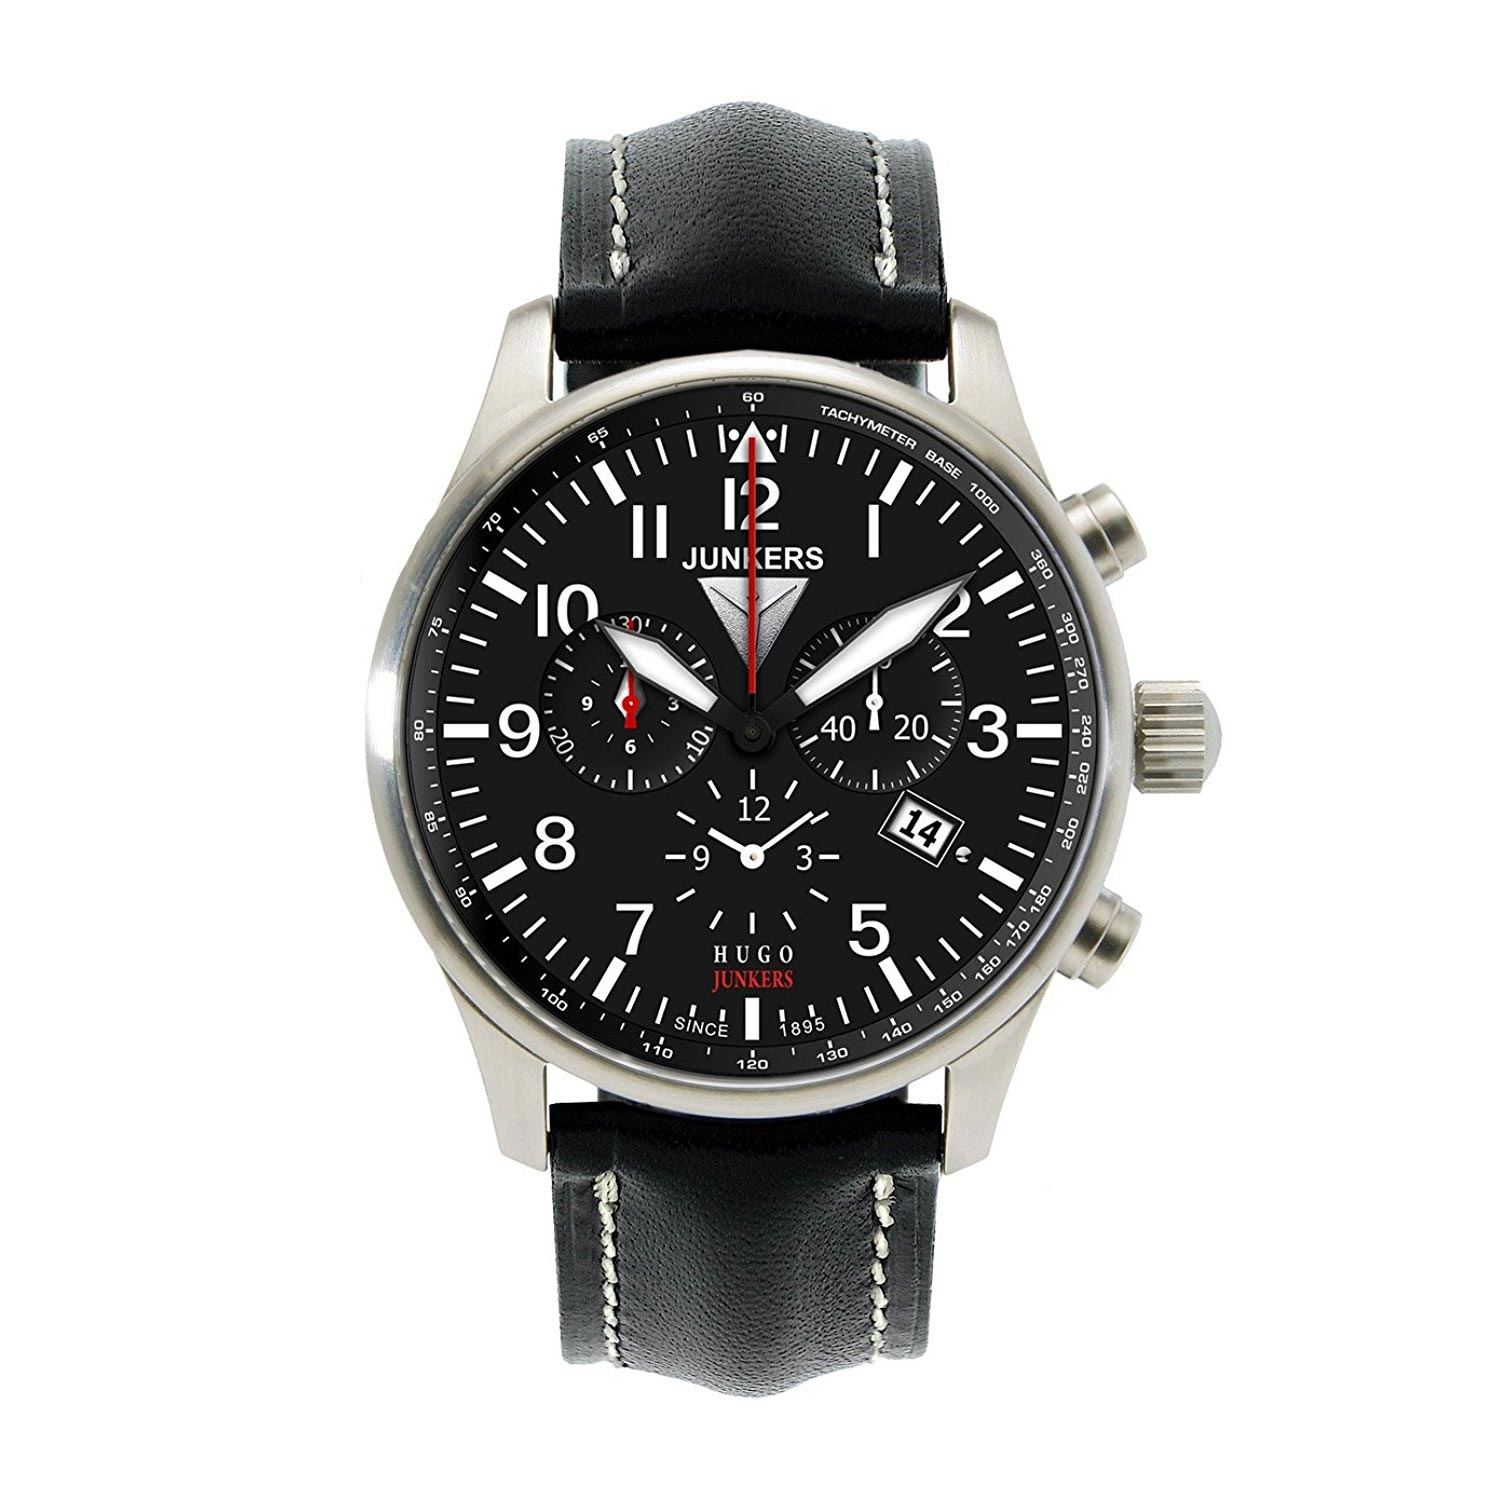 junkers flieger chronograph mit tachymeter l nette und quarzuhrwerk herrenuhren armbanduhren. Black Bedroom Furniture Sets. Home Design Ideas